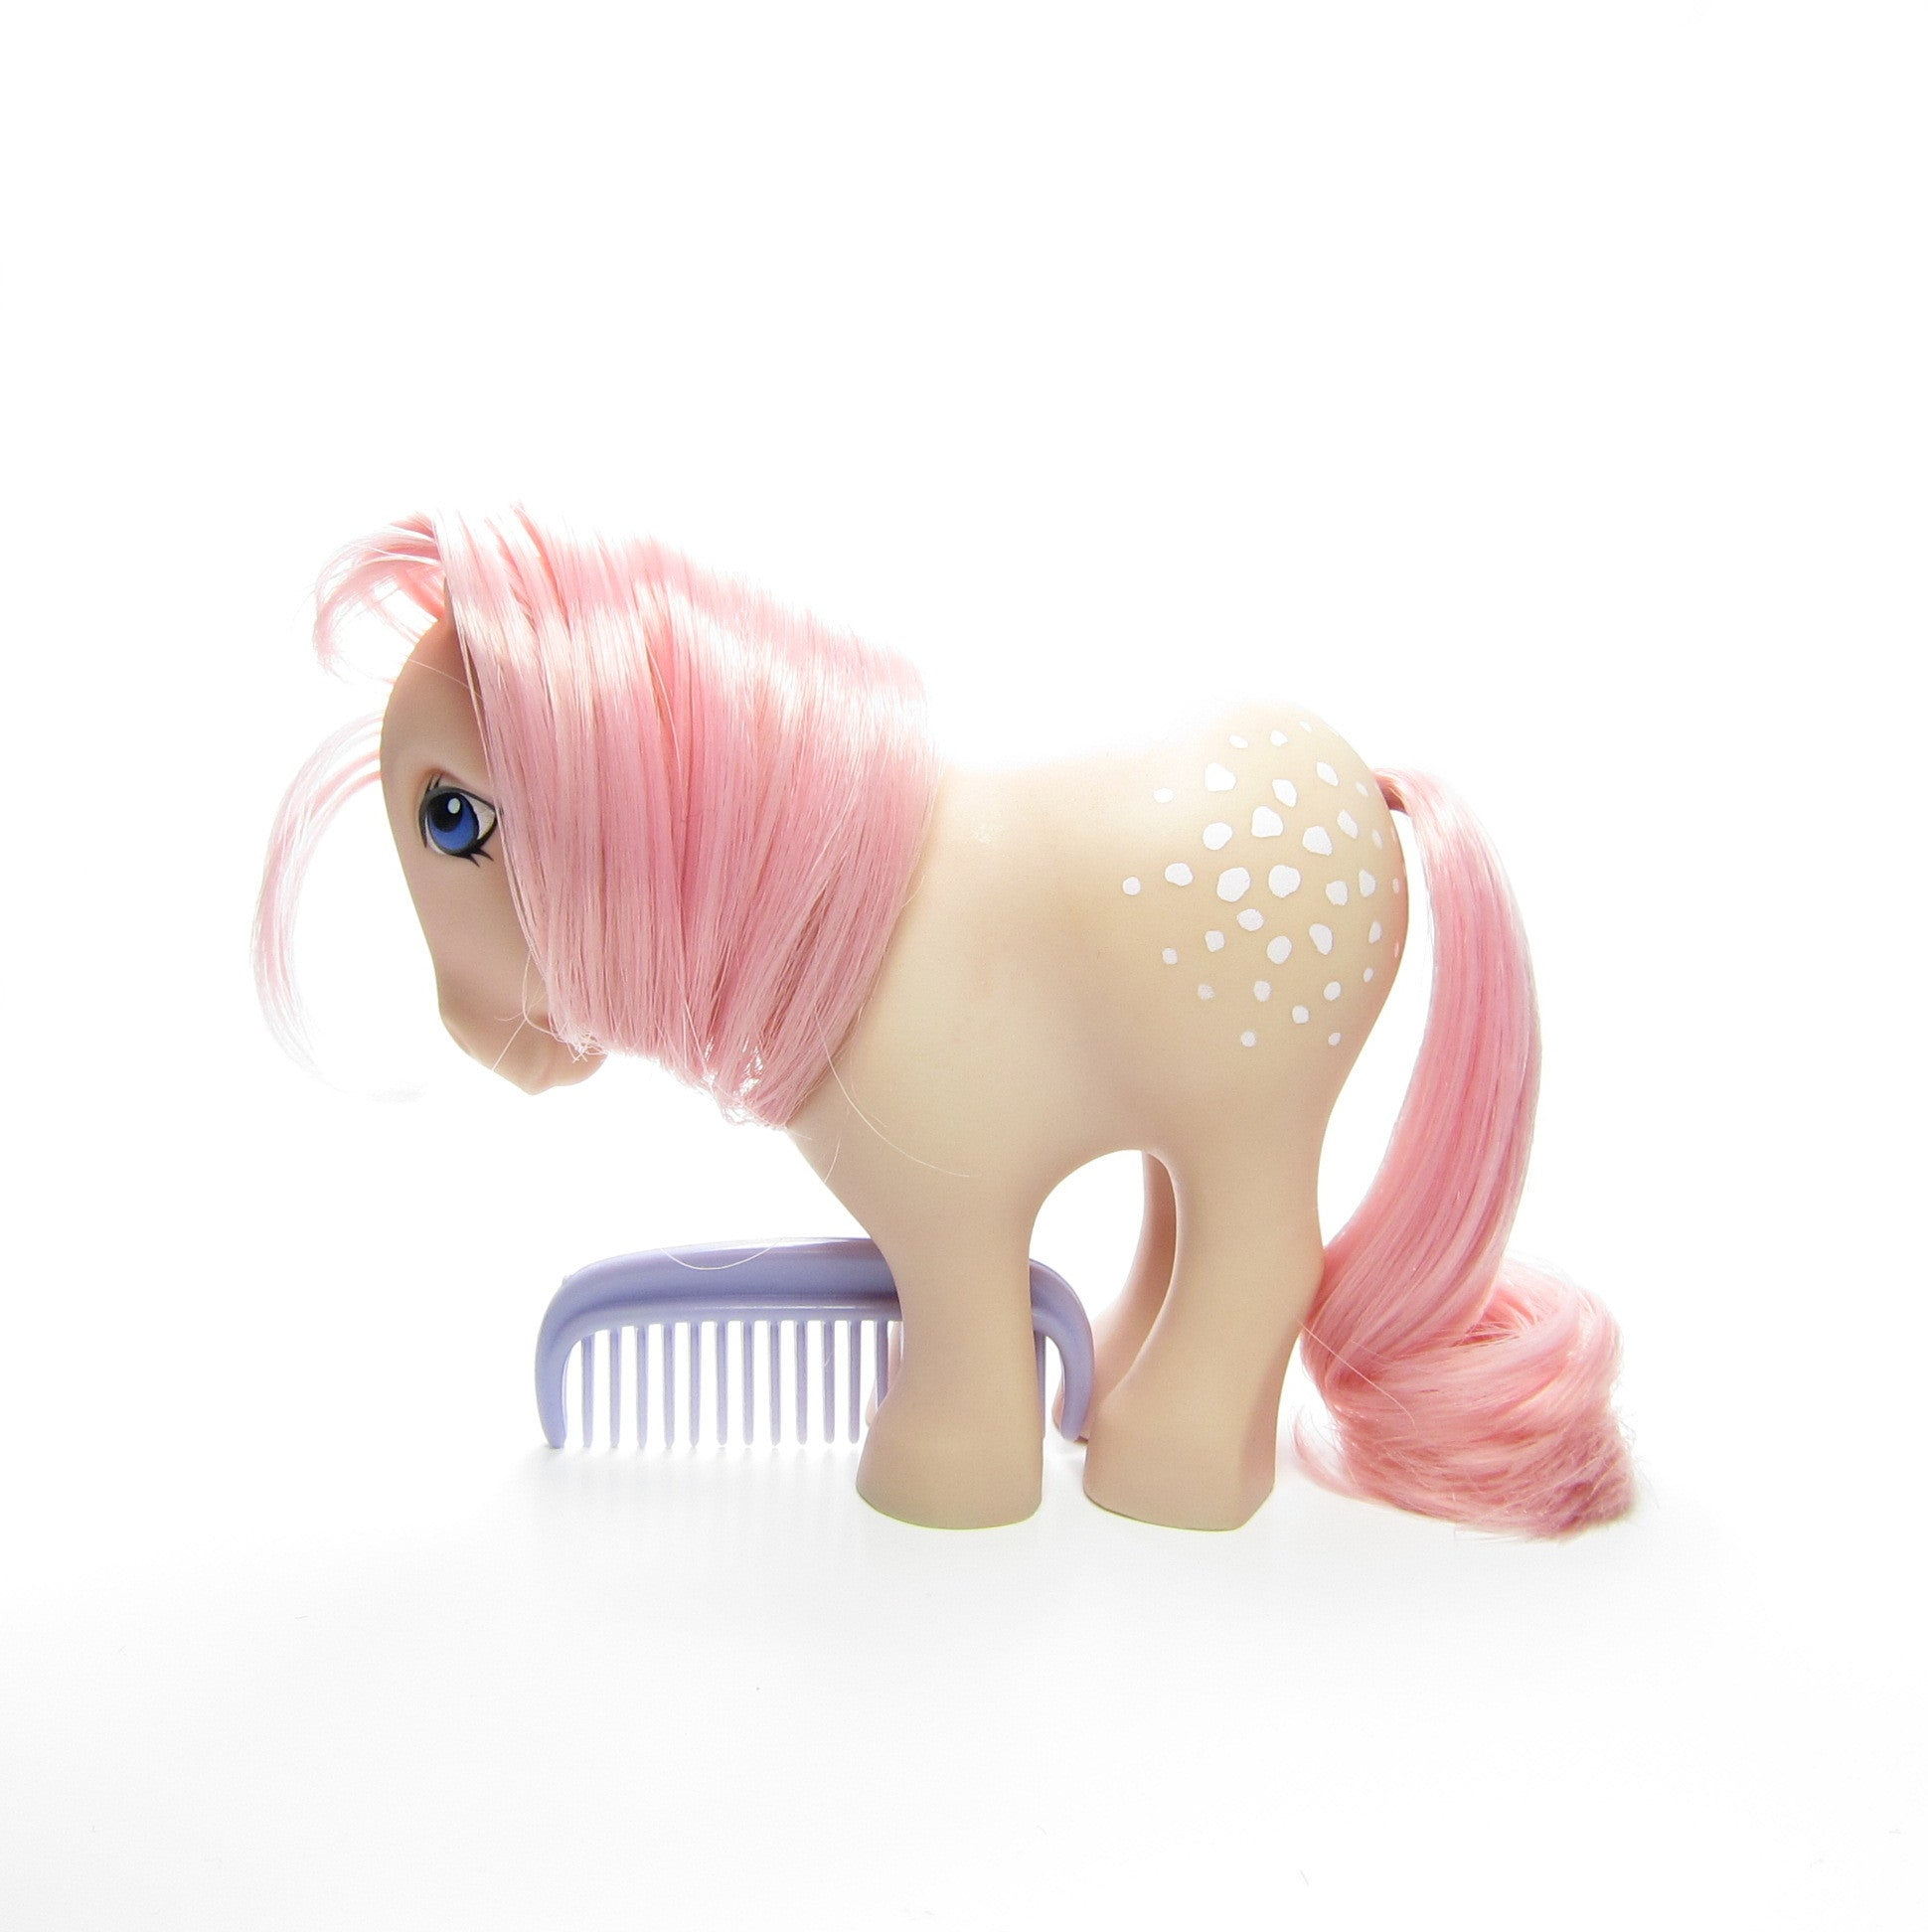 Flat Foot Cotton Candy My Little Pony Vintage G1